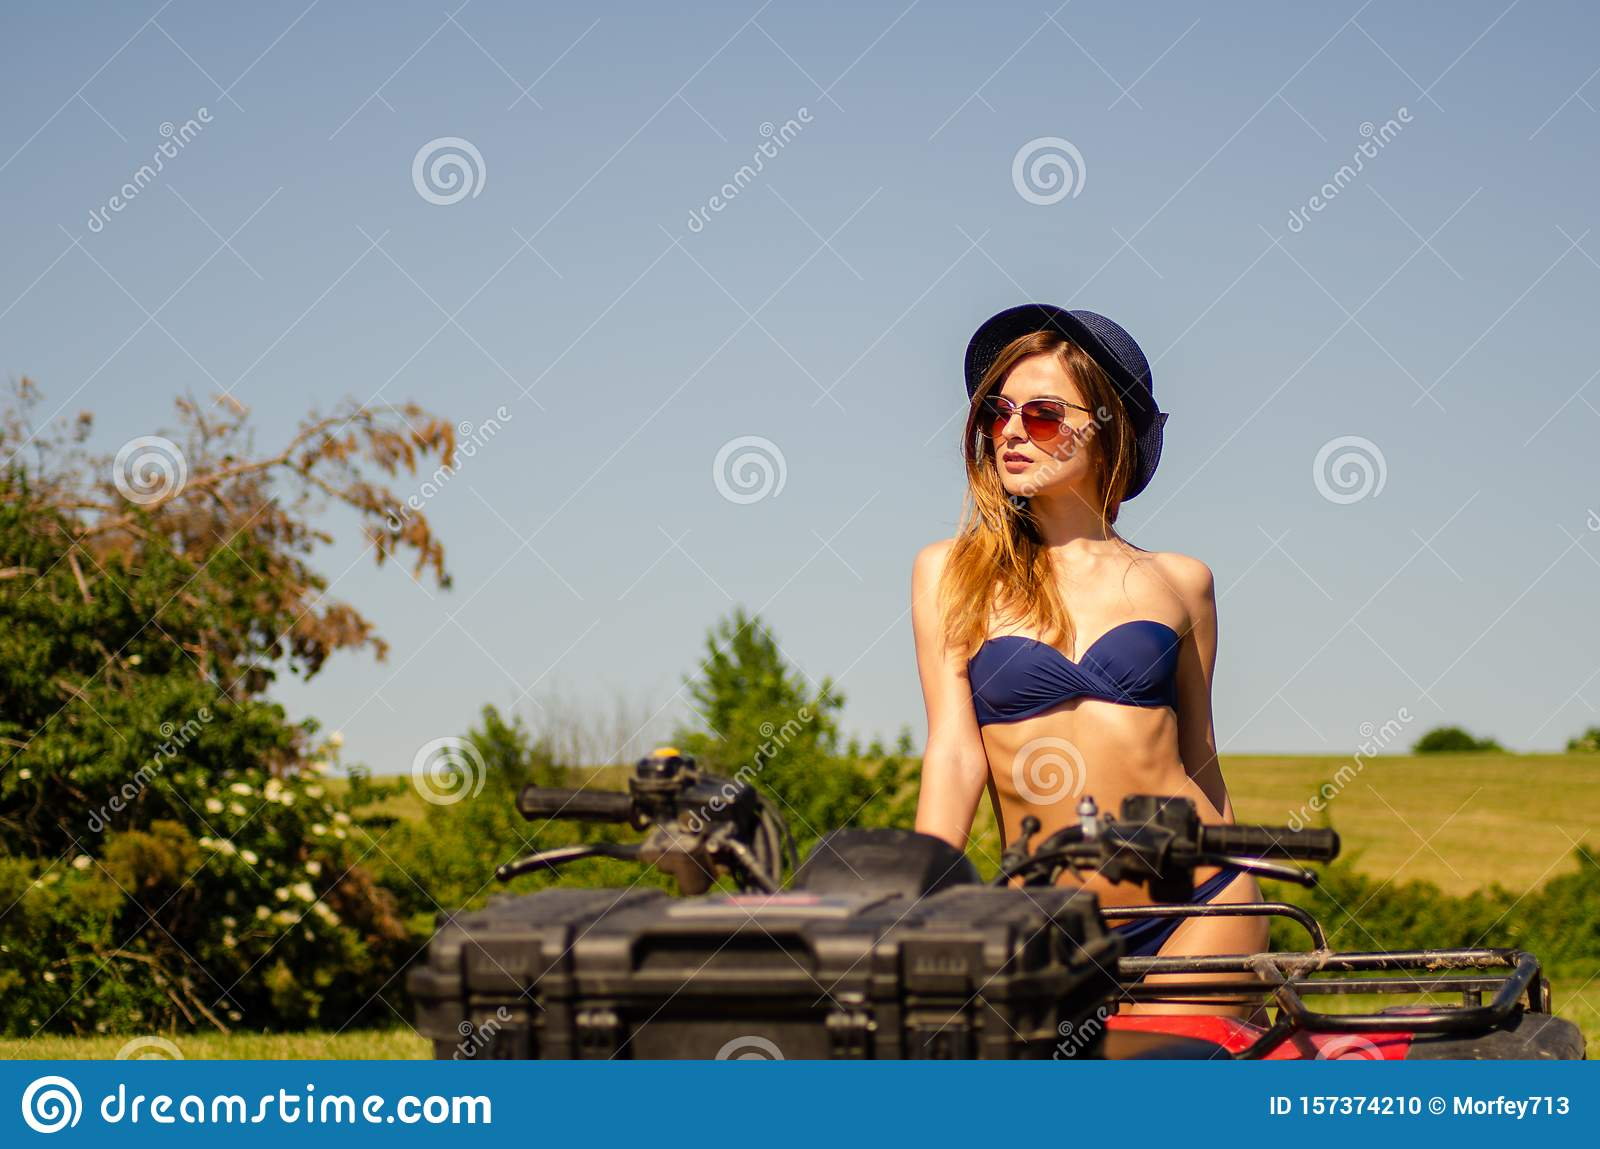 Sexy women on quads images